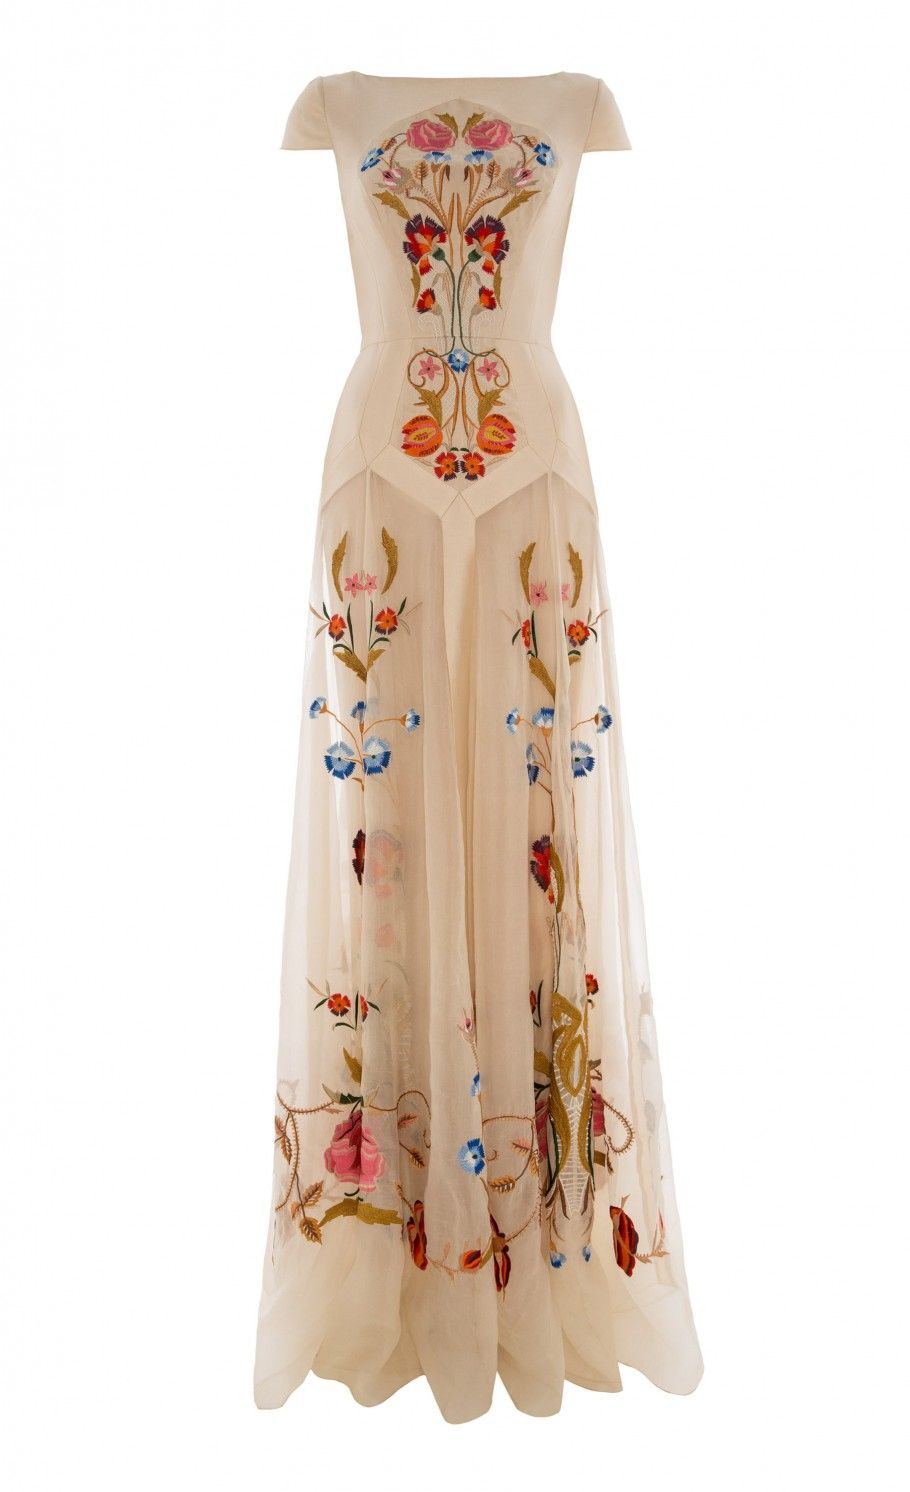 Long Toledo Dress Designer Evening Gowns Temperley